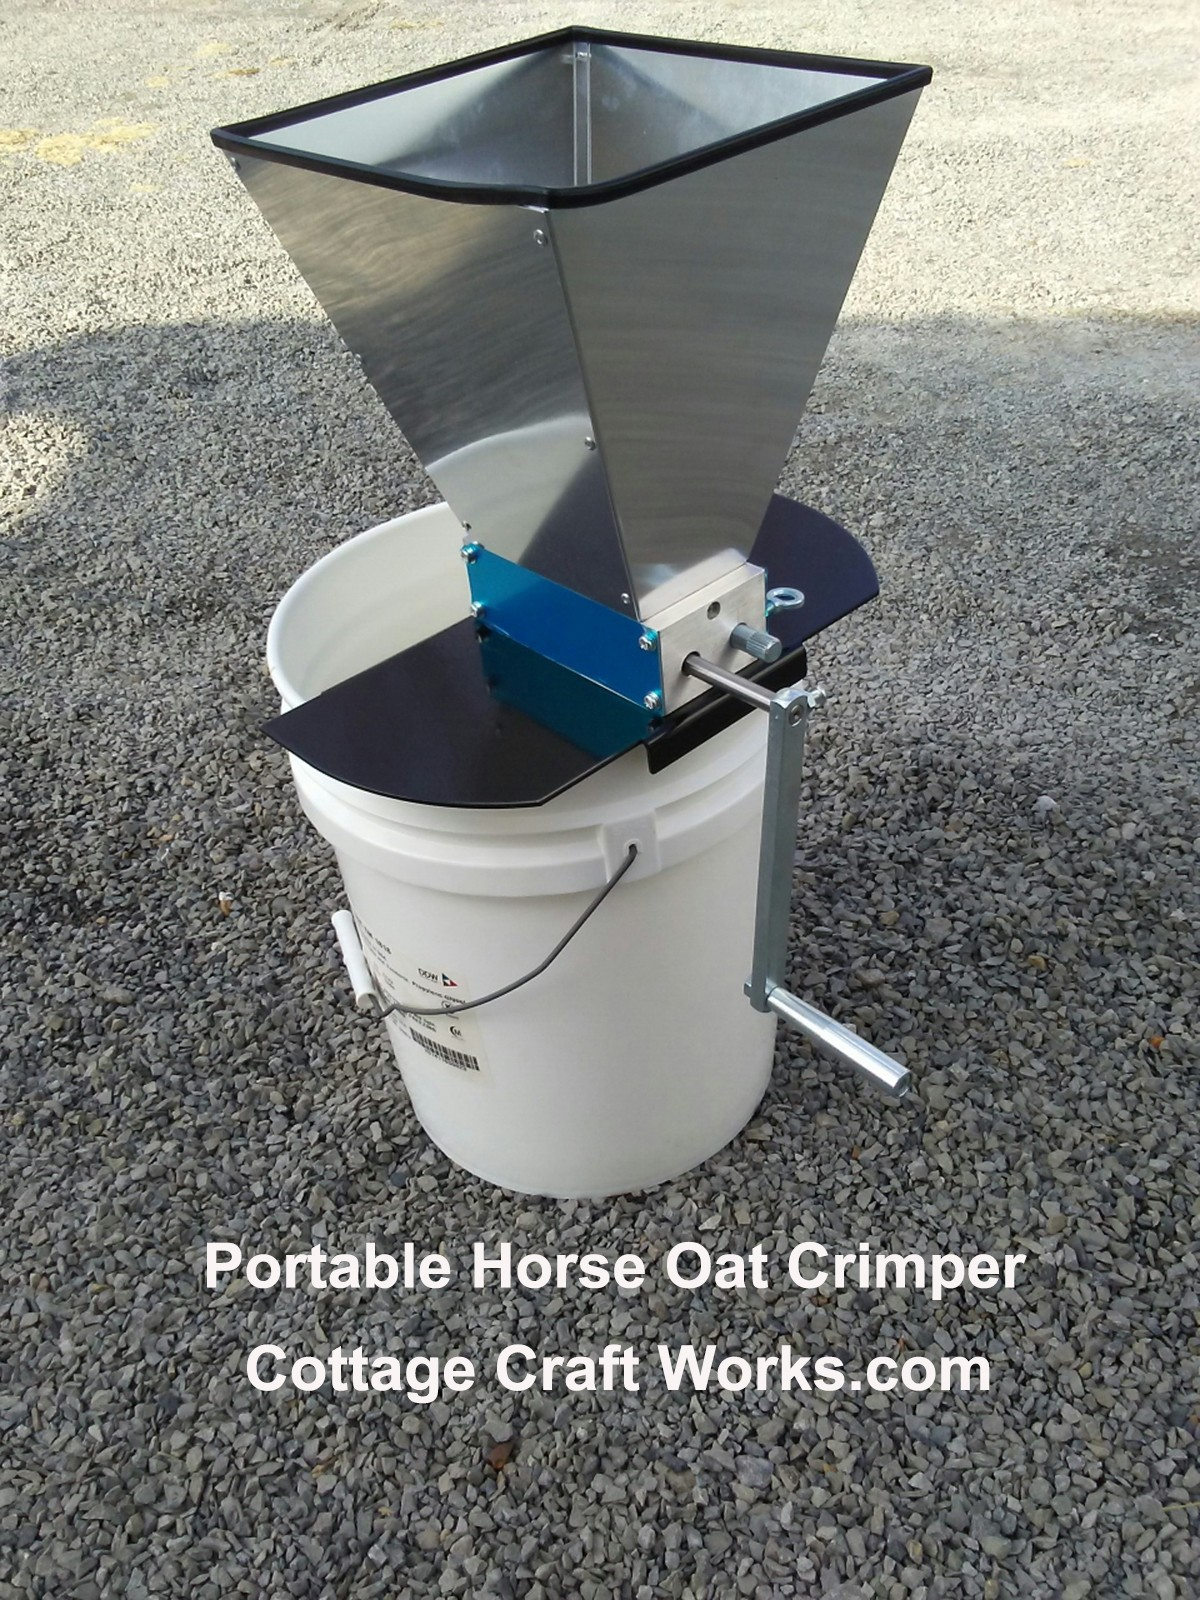 Portable Horse Oat Crimper